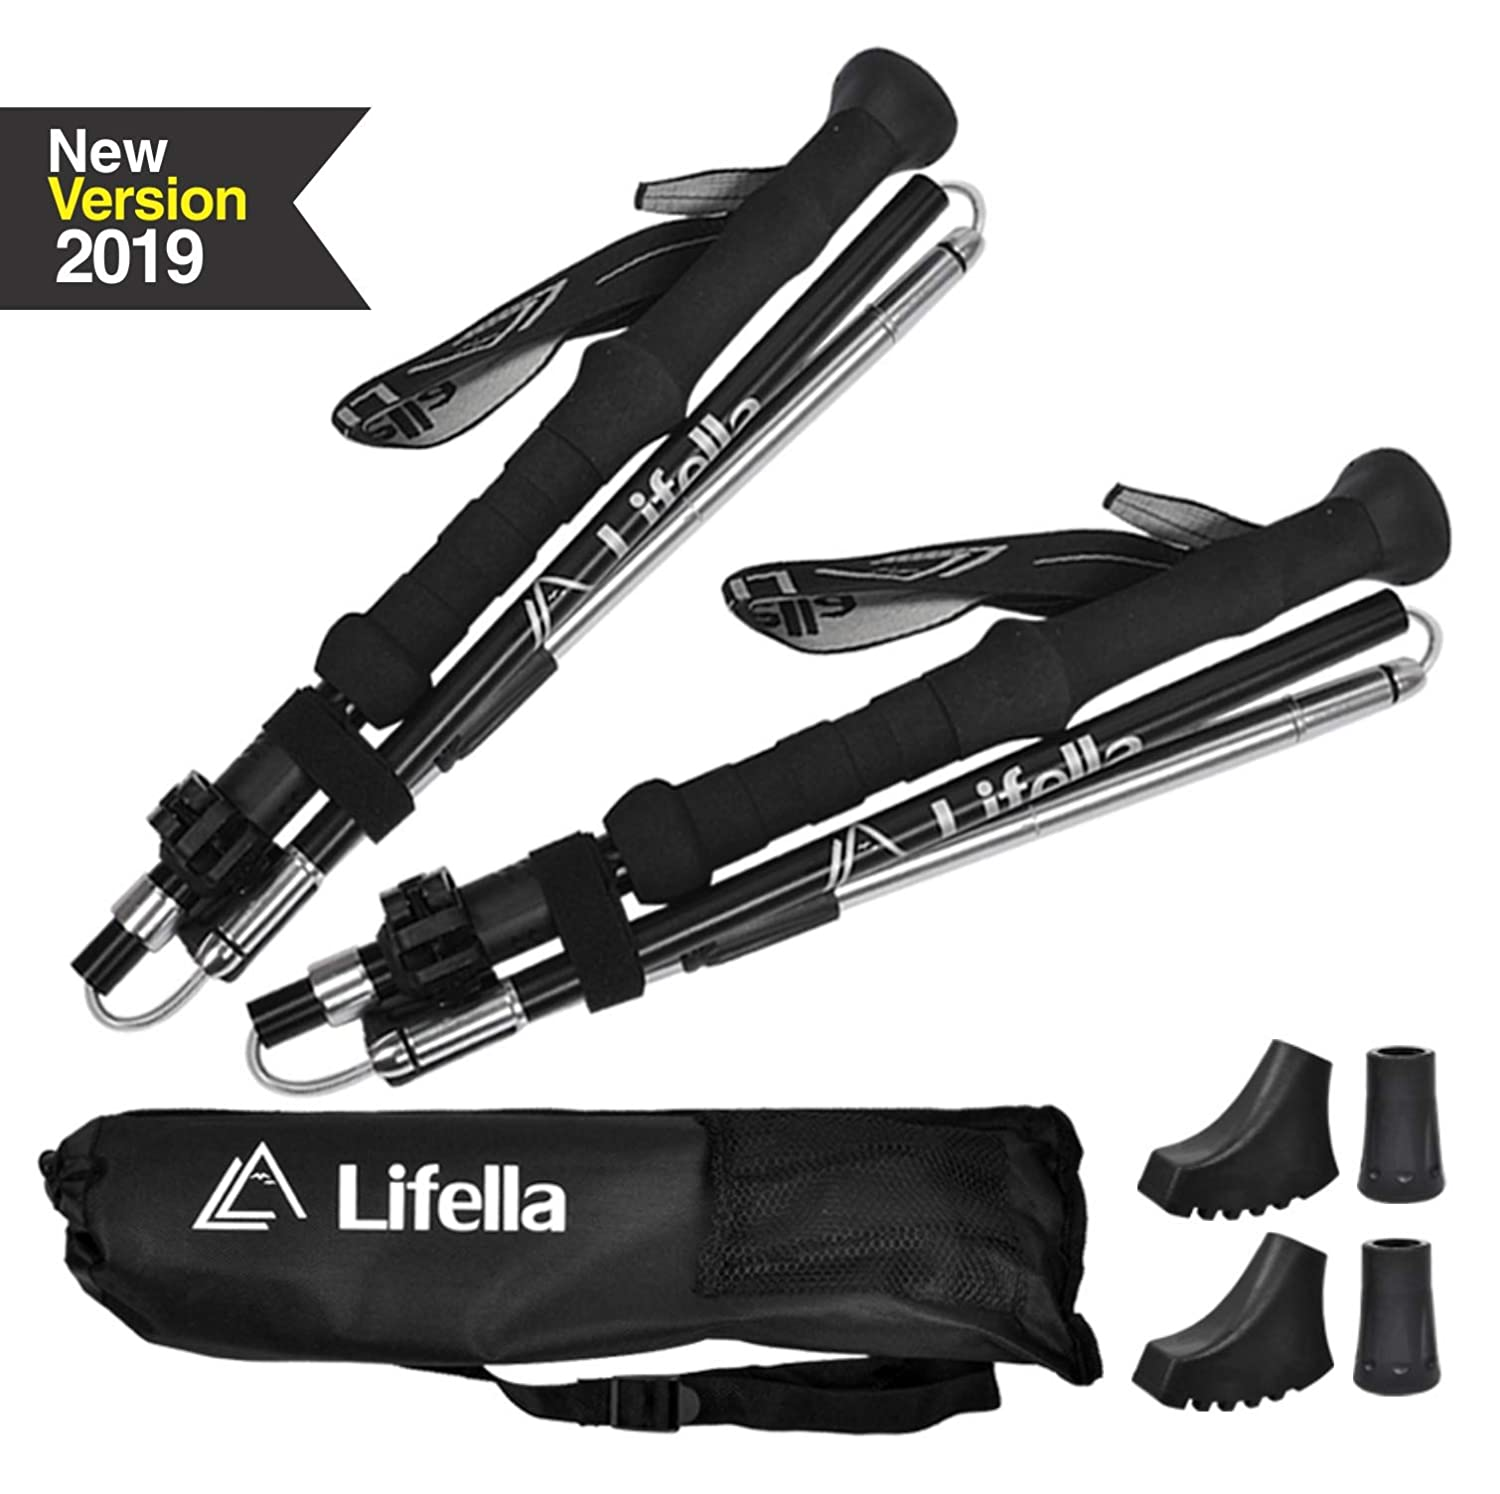 Lifella Collapsible Trekking Poles, 2 Pack Lightweight Adjustable Shock-Absorbent Walking Sticks with Terrain Accessories Carry Bags for Mountain Hiking, Camping, Backpacking